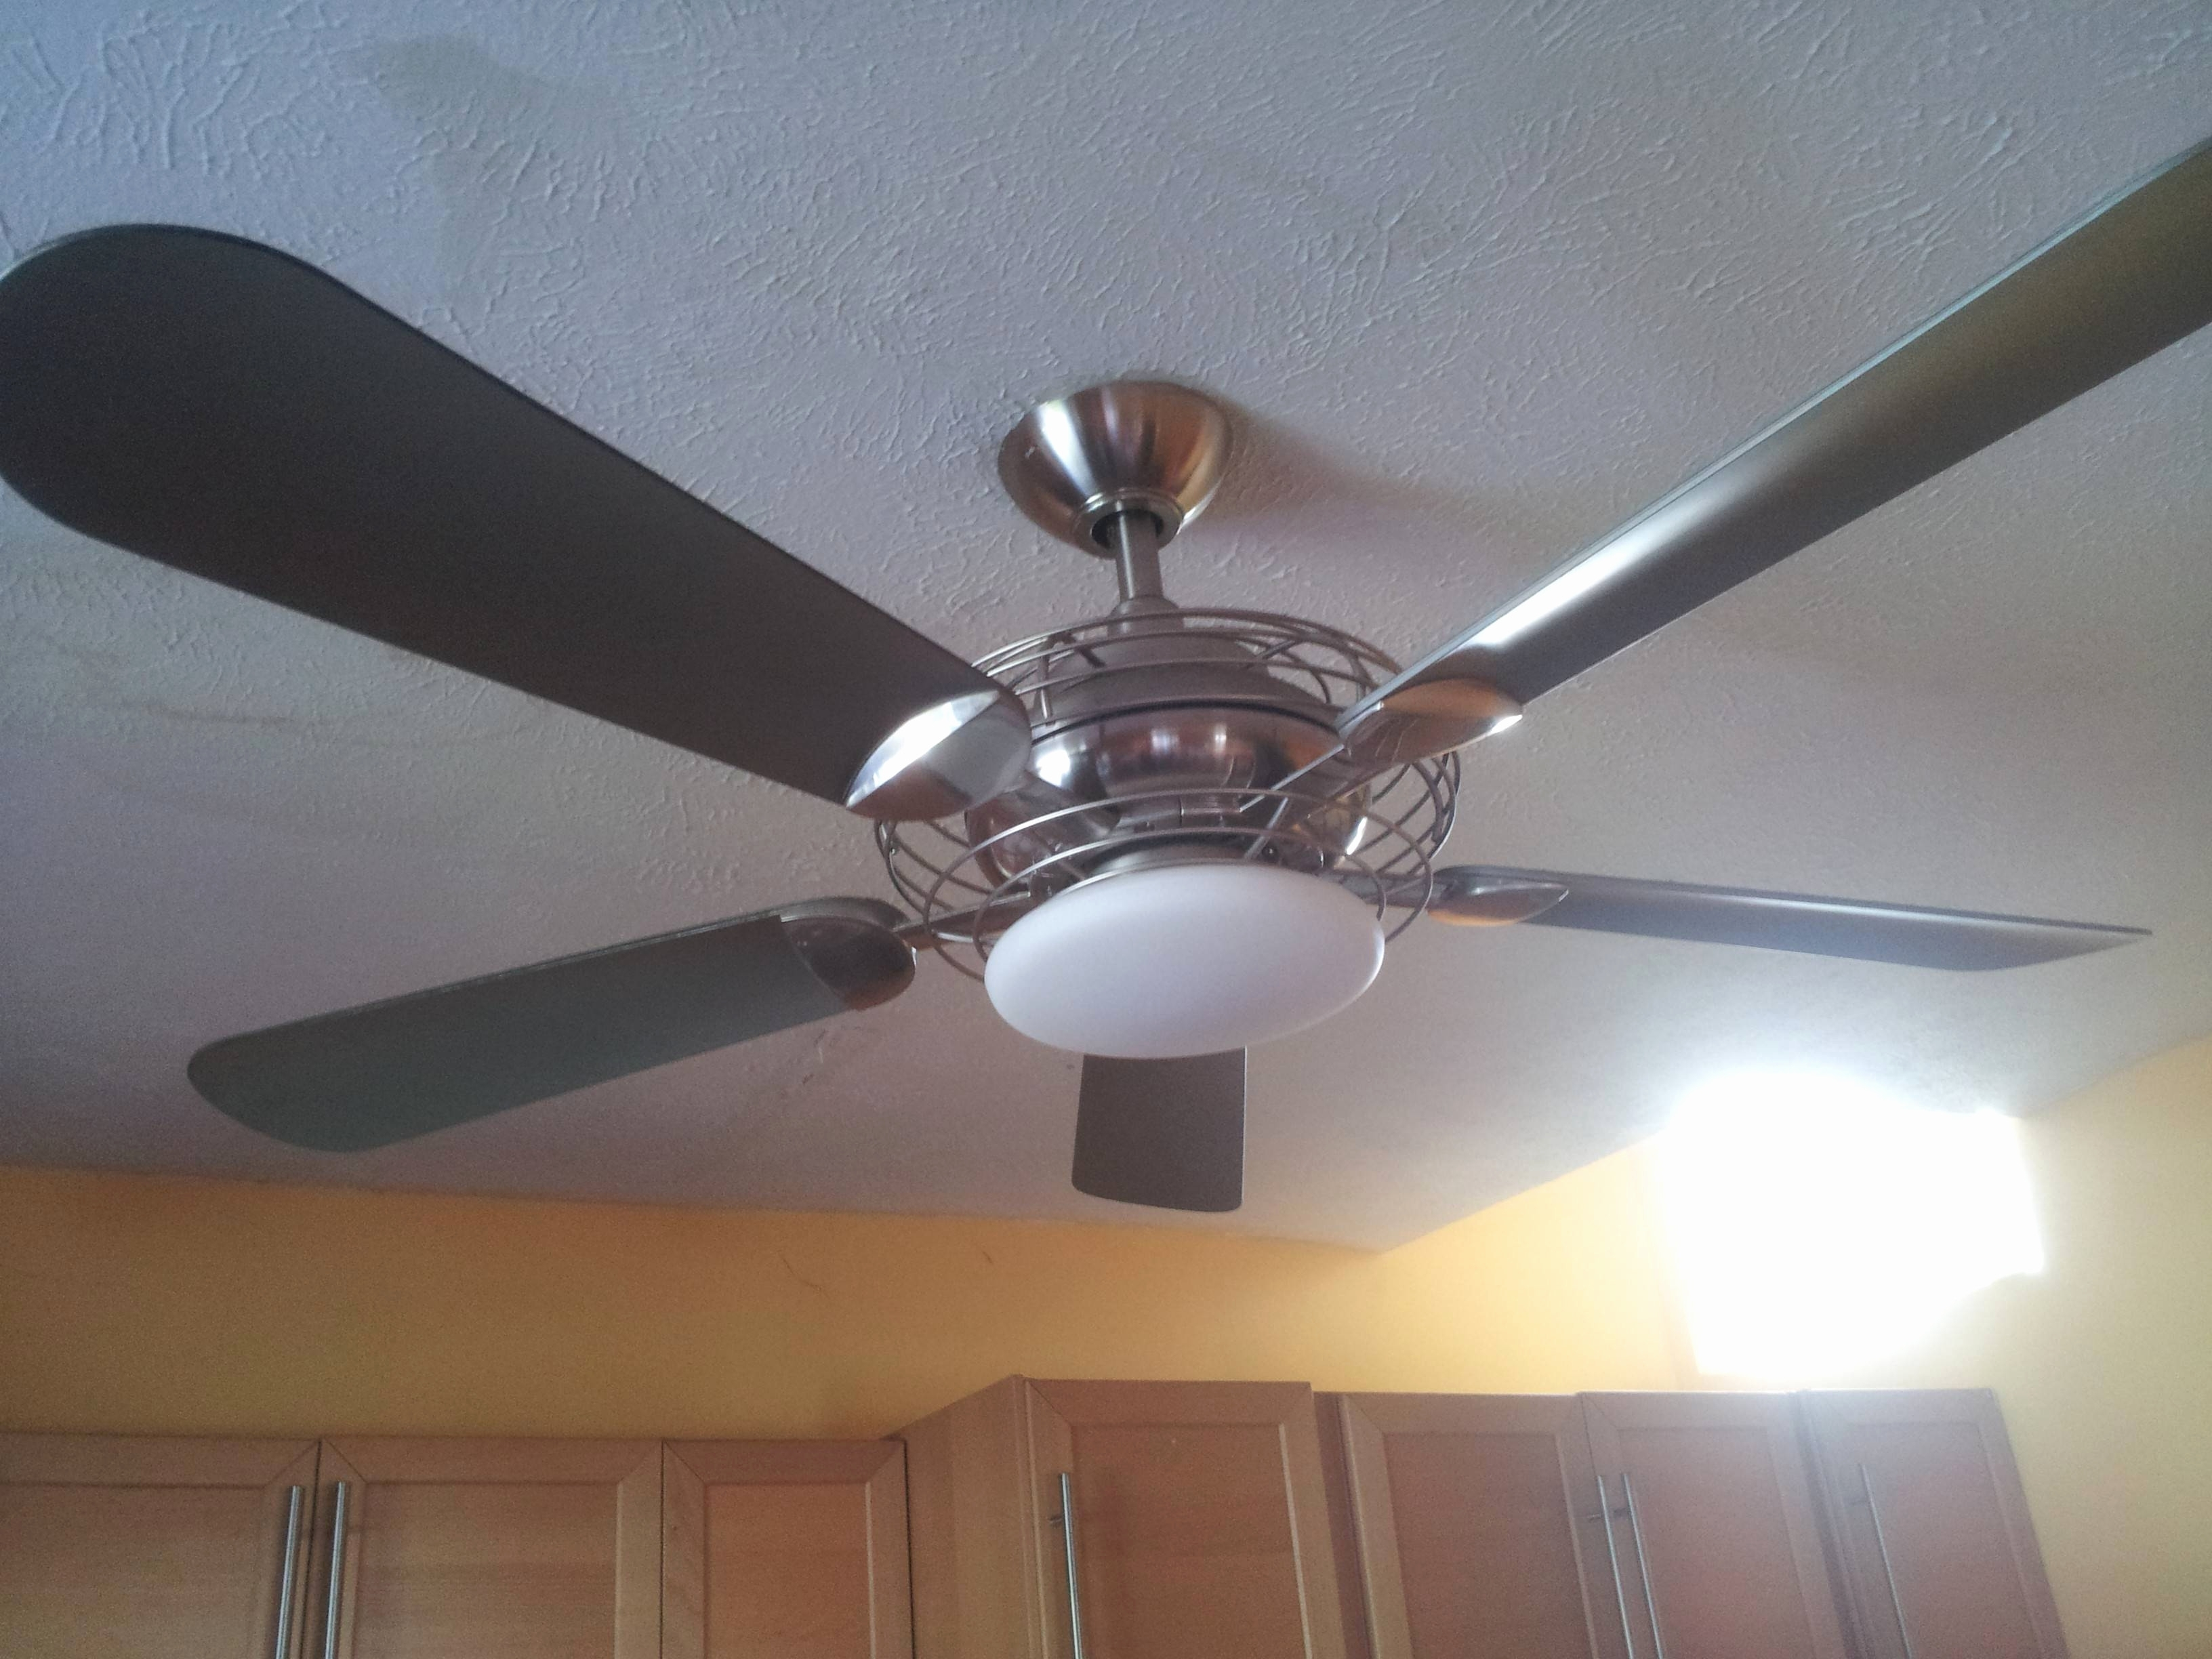 36 Inch Flush Mount Ceiling Fans Lovely Archive Of May 2018 Blue Regarding Newest 36 Inch Outdoor Ceiling Fans With Light Flush Mount (View 19 of 20)